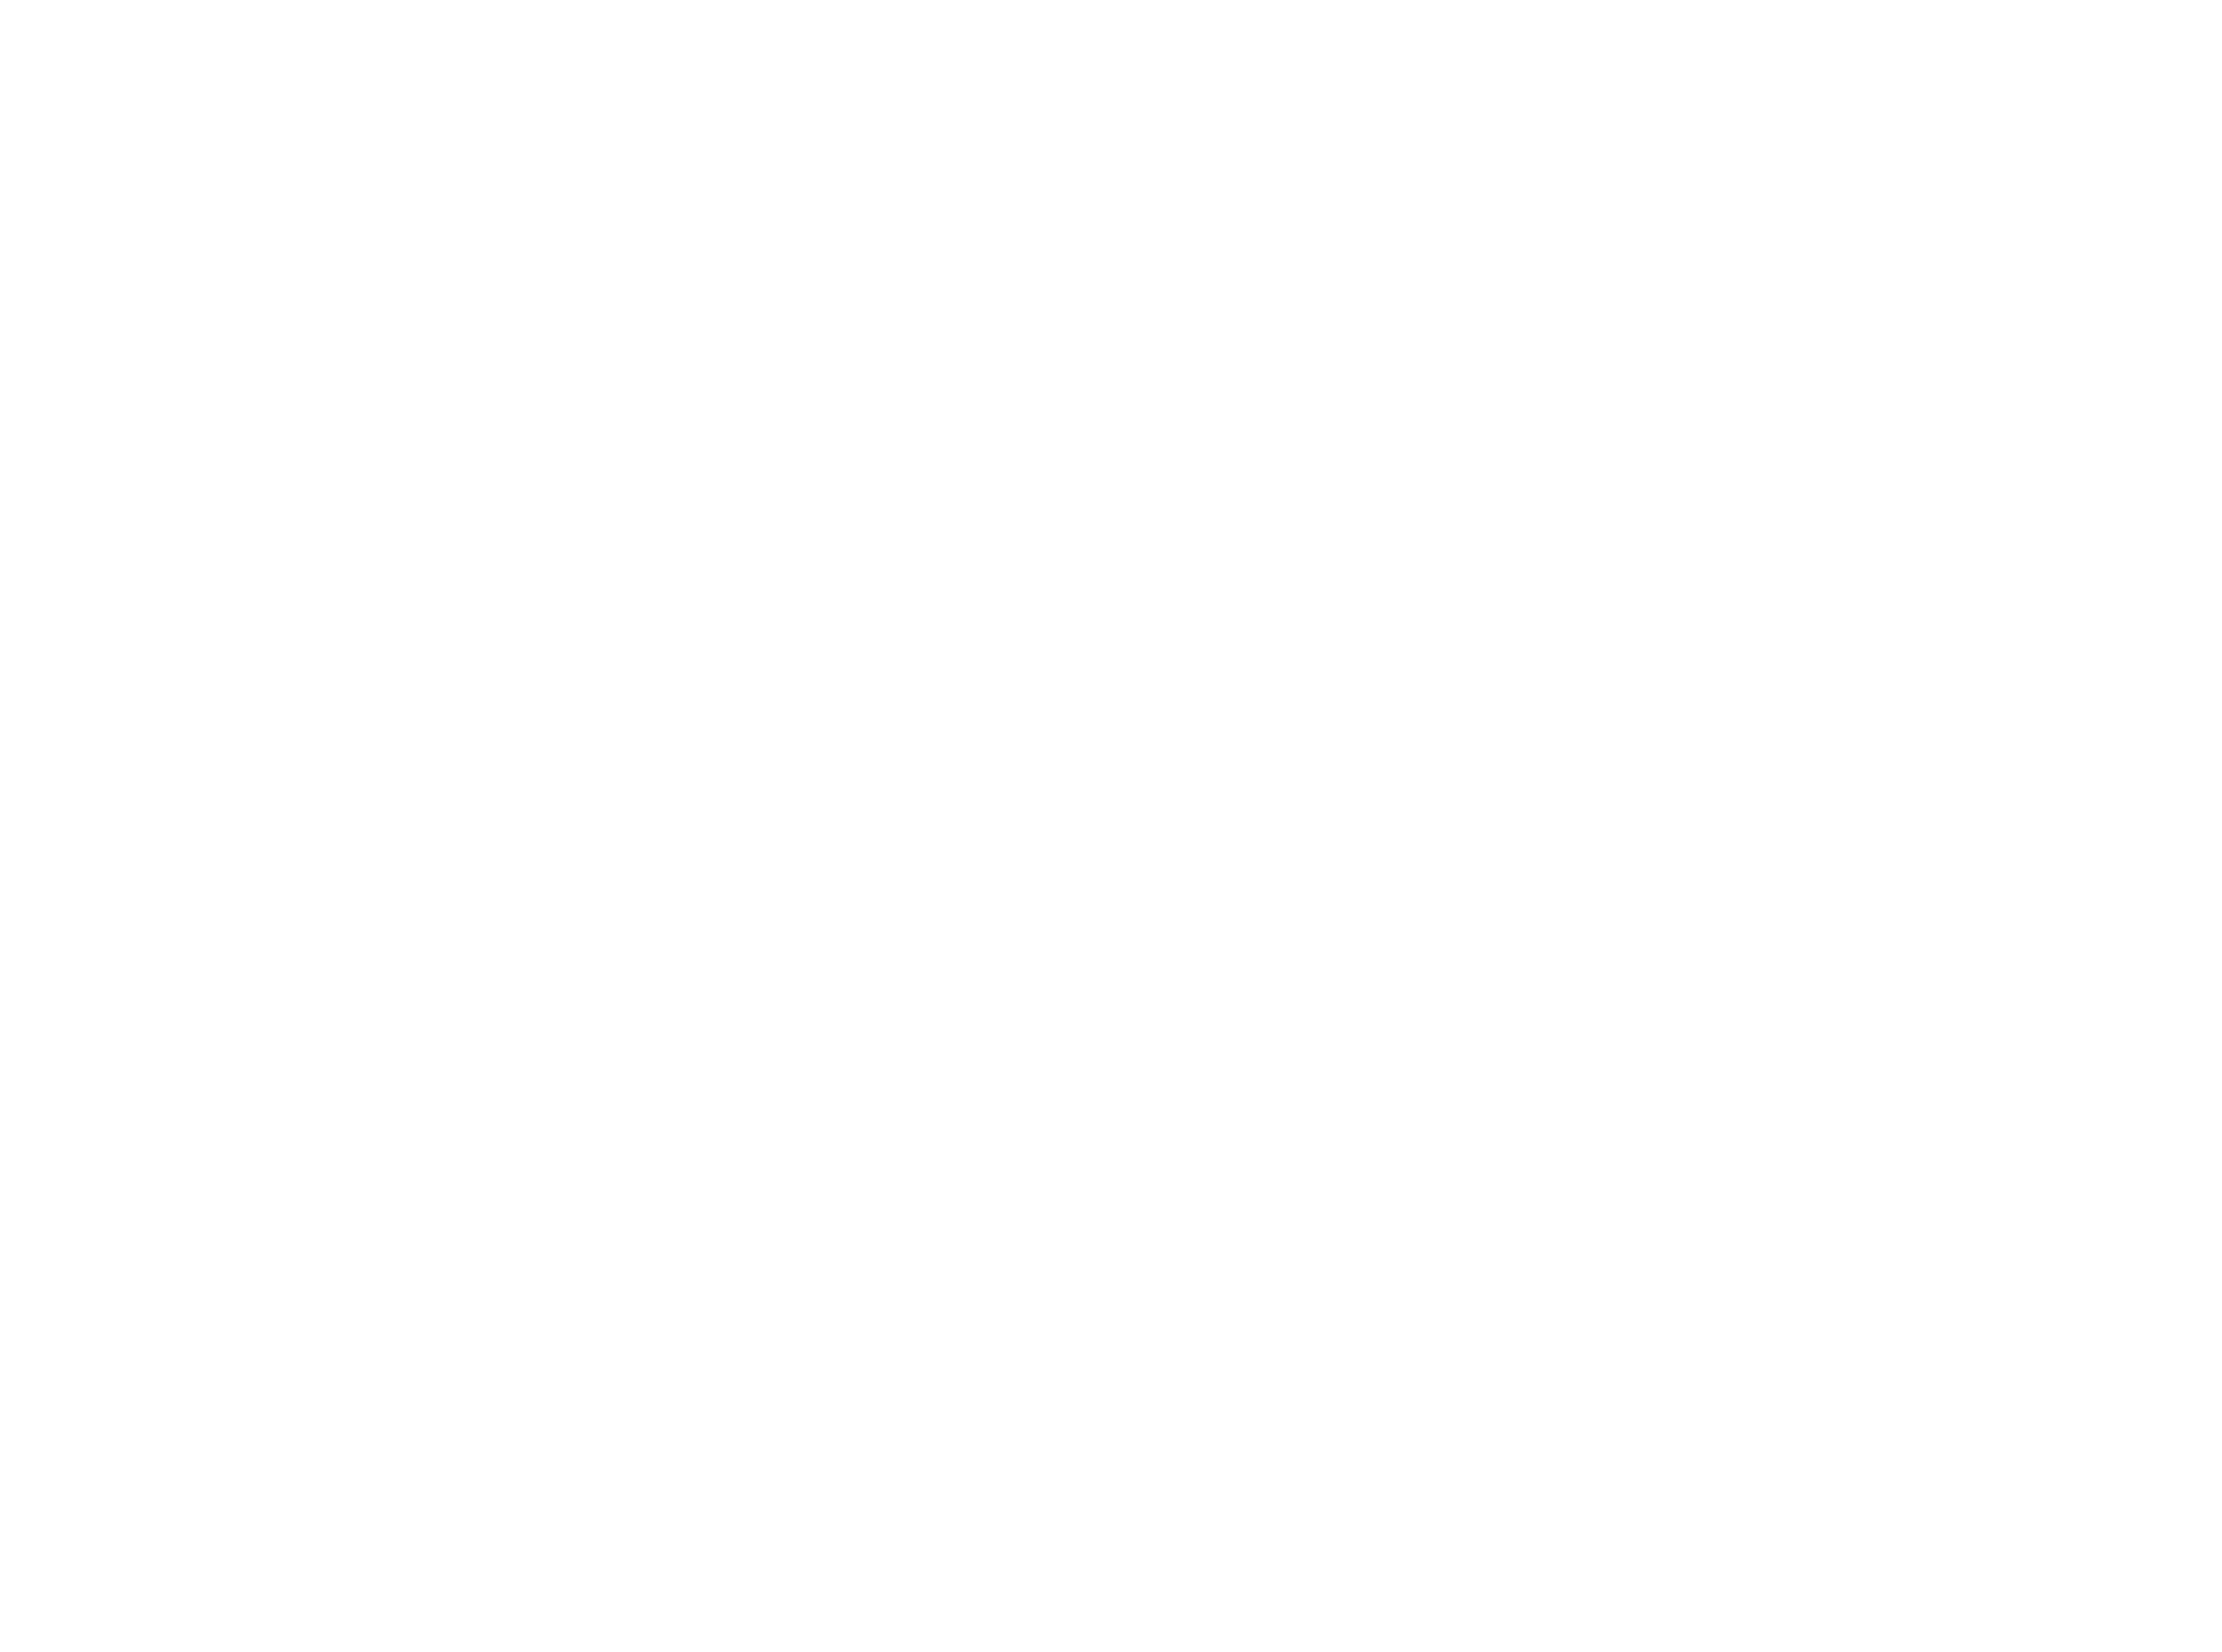 Grand Depok City Official Website